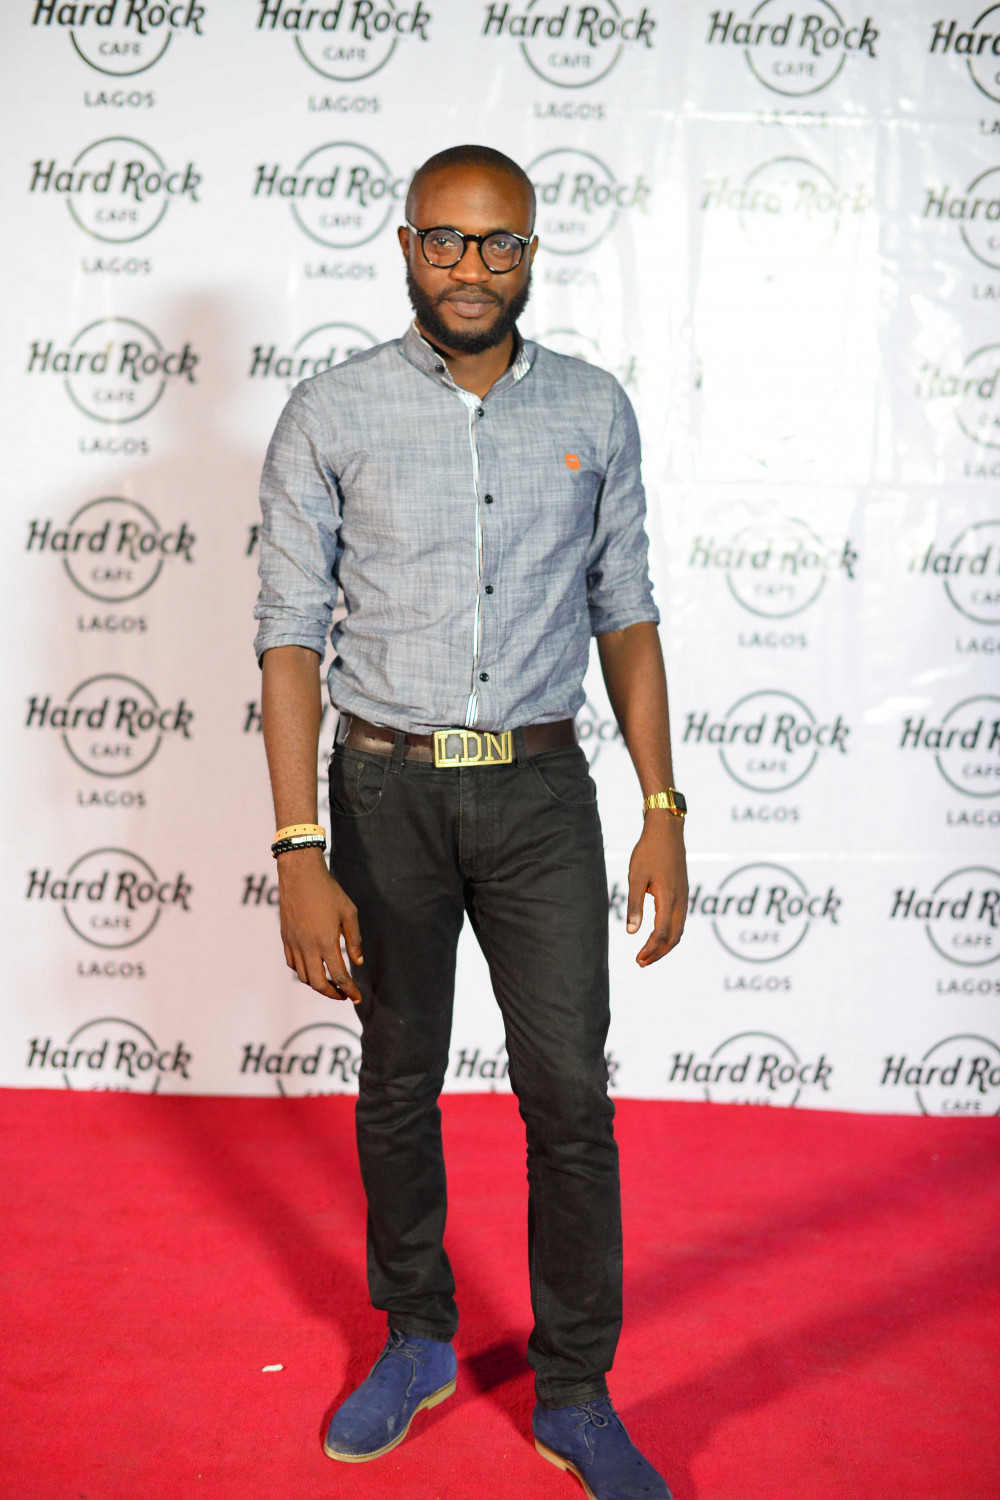 Hard Rock Cafe Lagos Launch BellaNaija Guest-